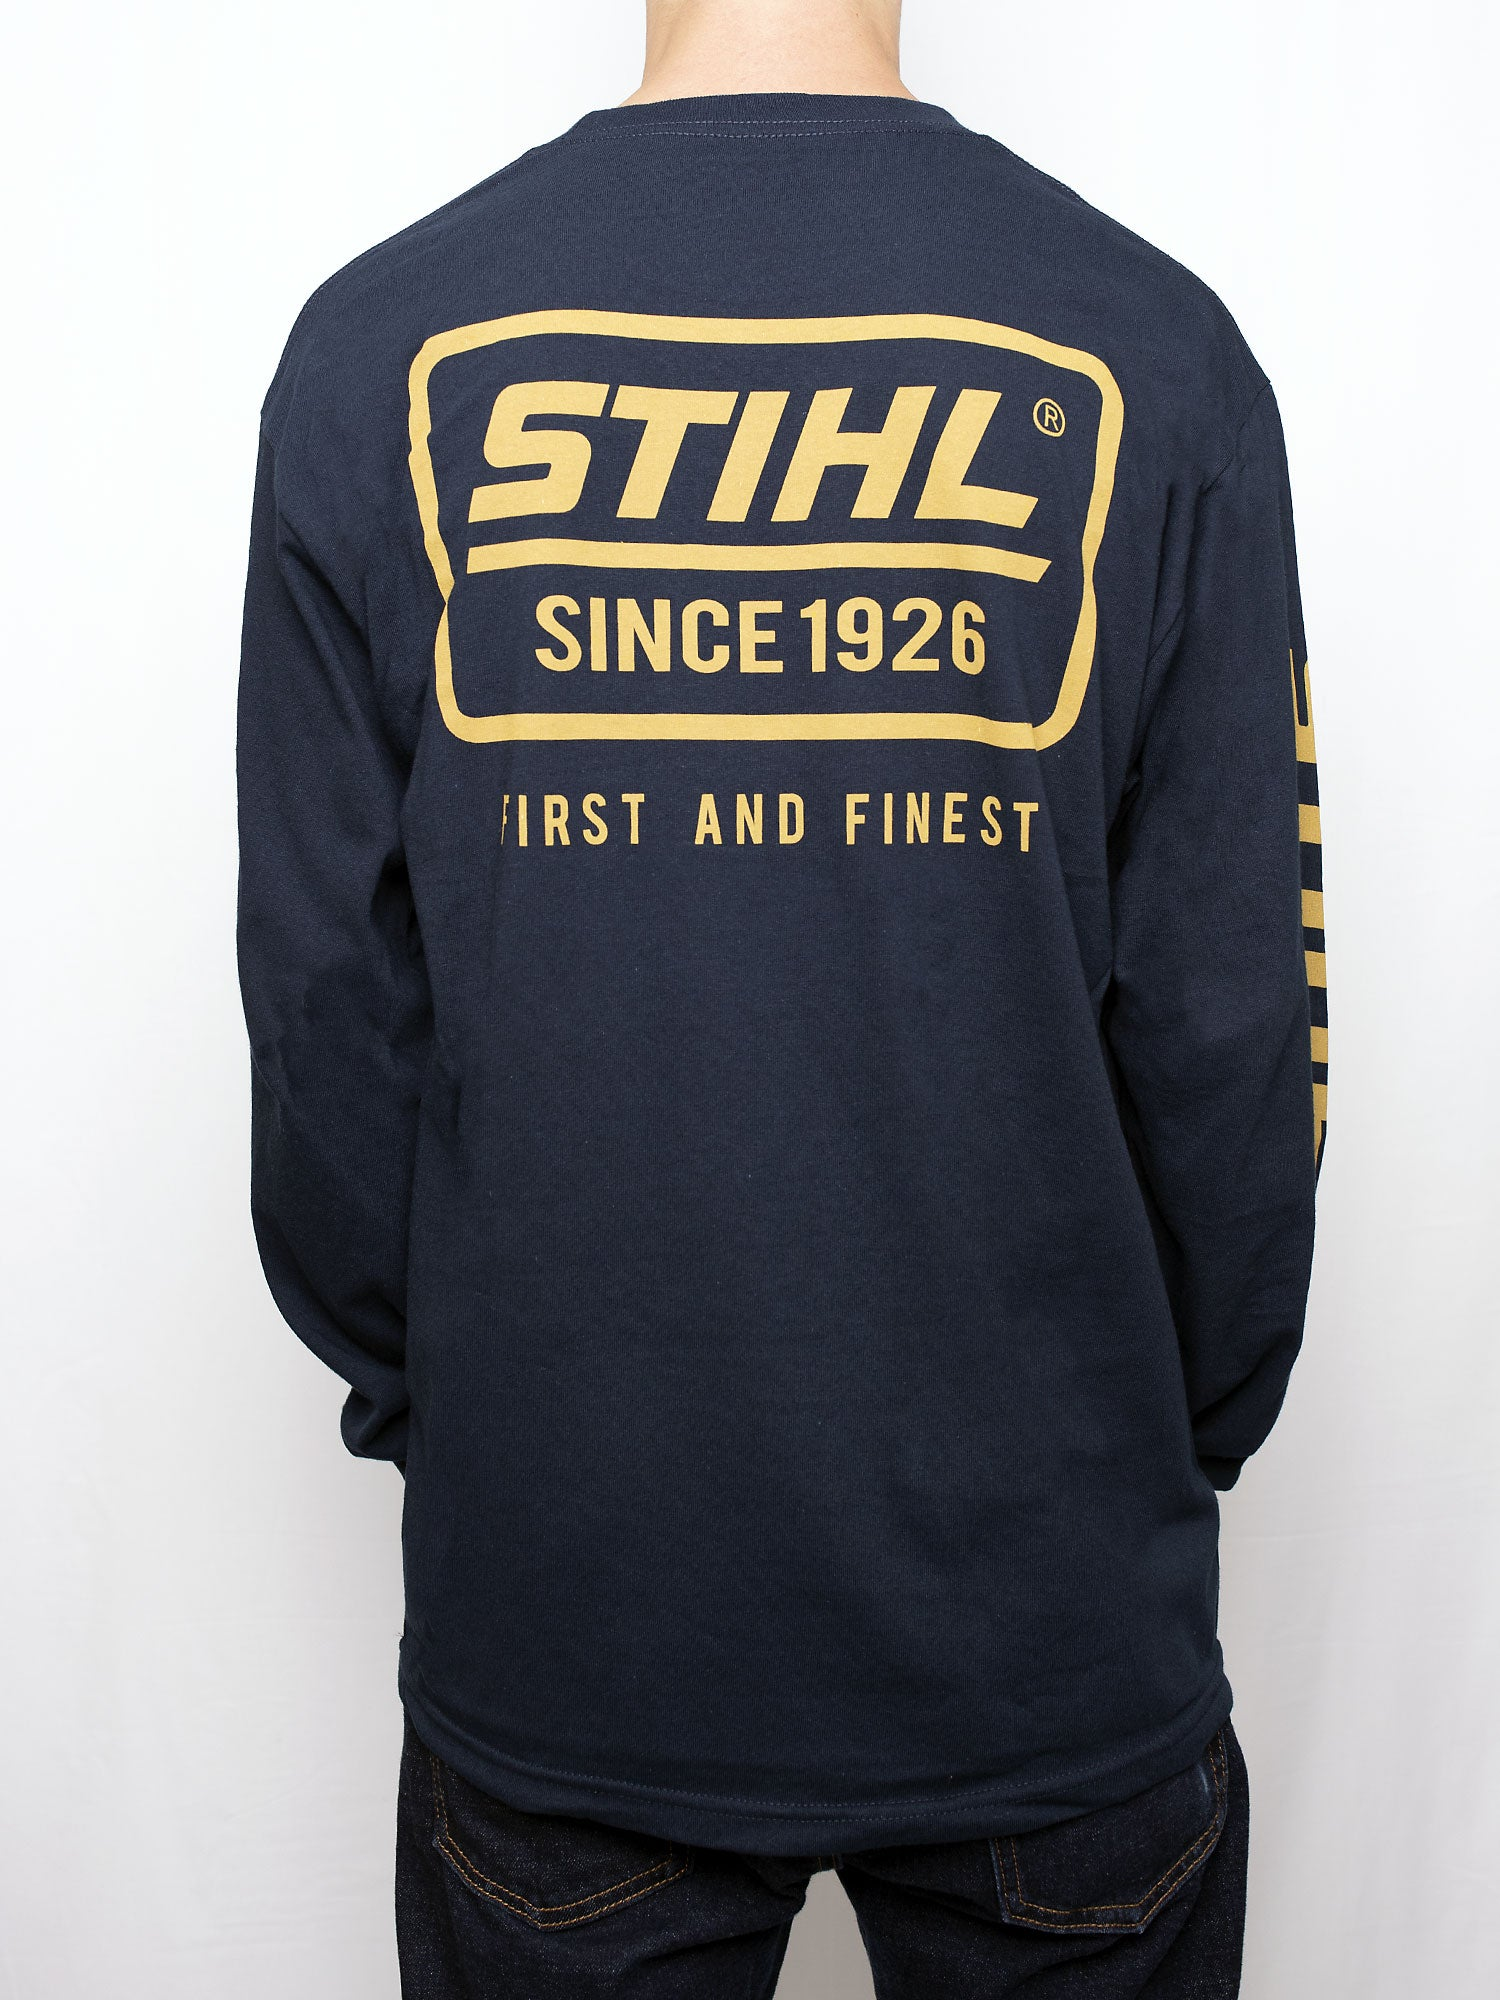 STIHL SINCE 1926 LONG SLEEVE SHIRT